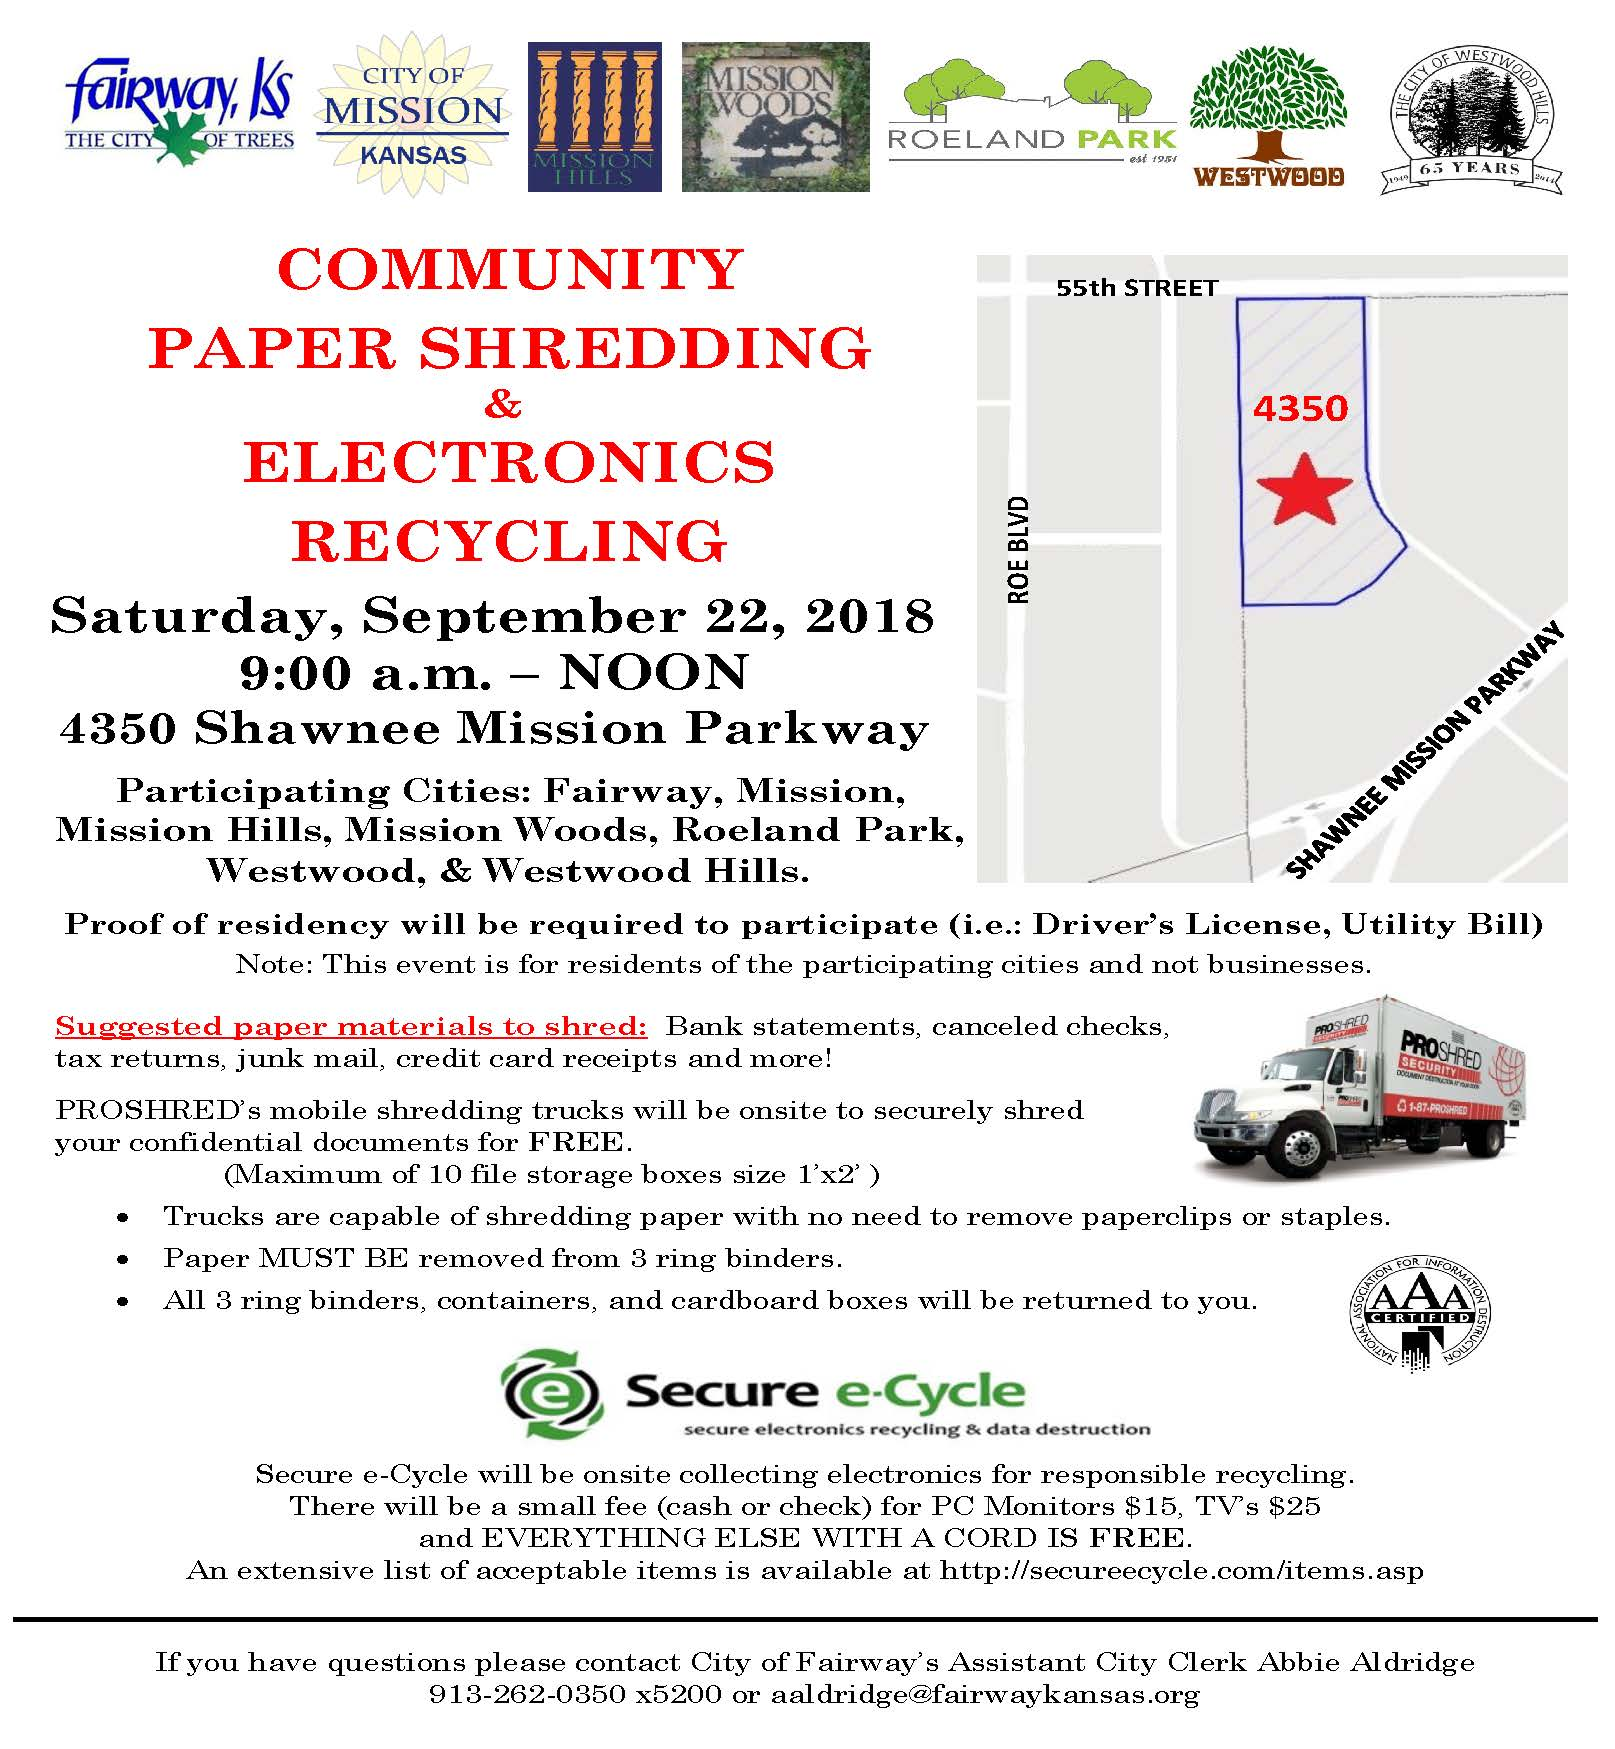 2018 Community Paper Shredding and Electronics Recycling